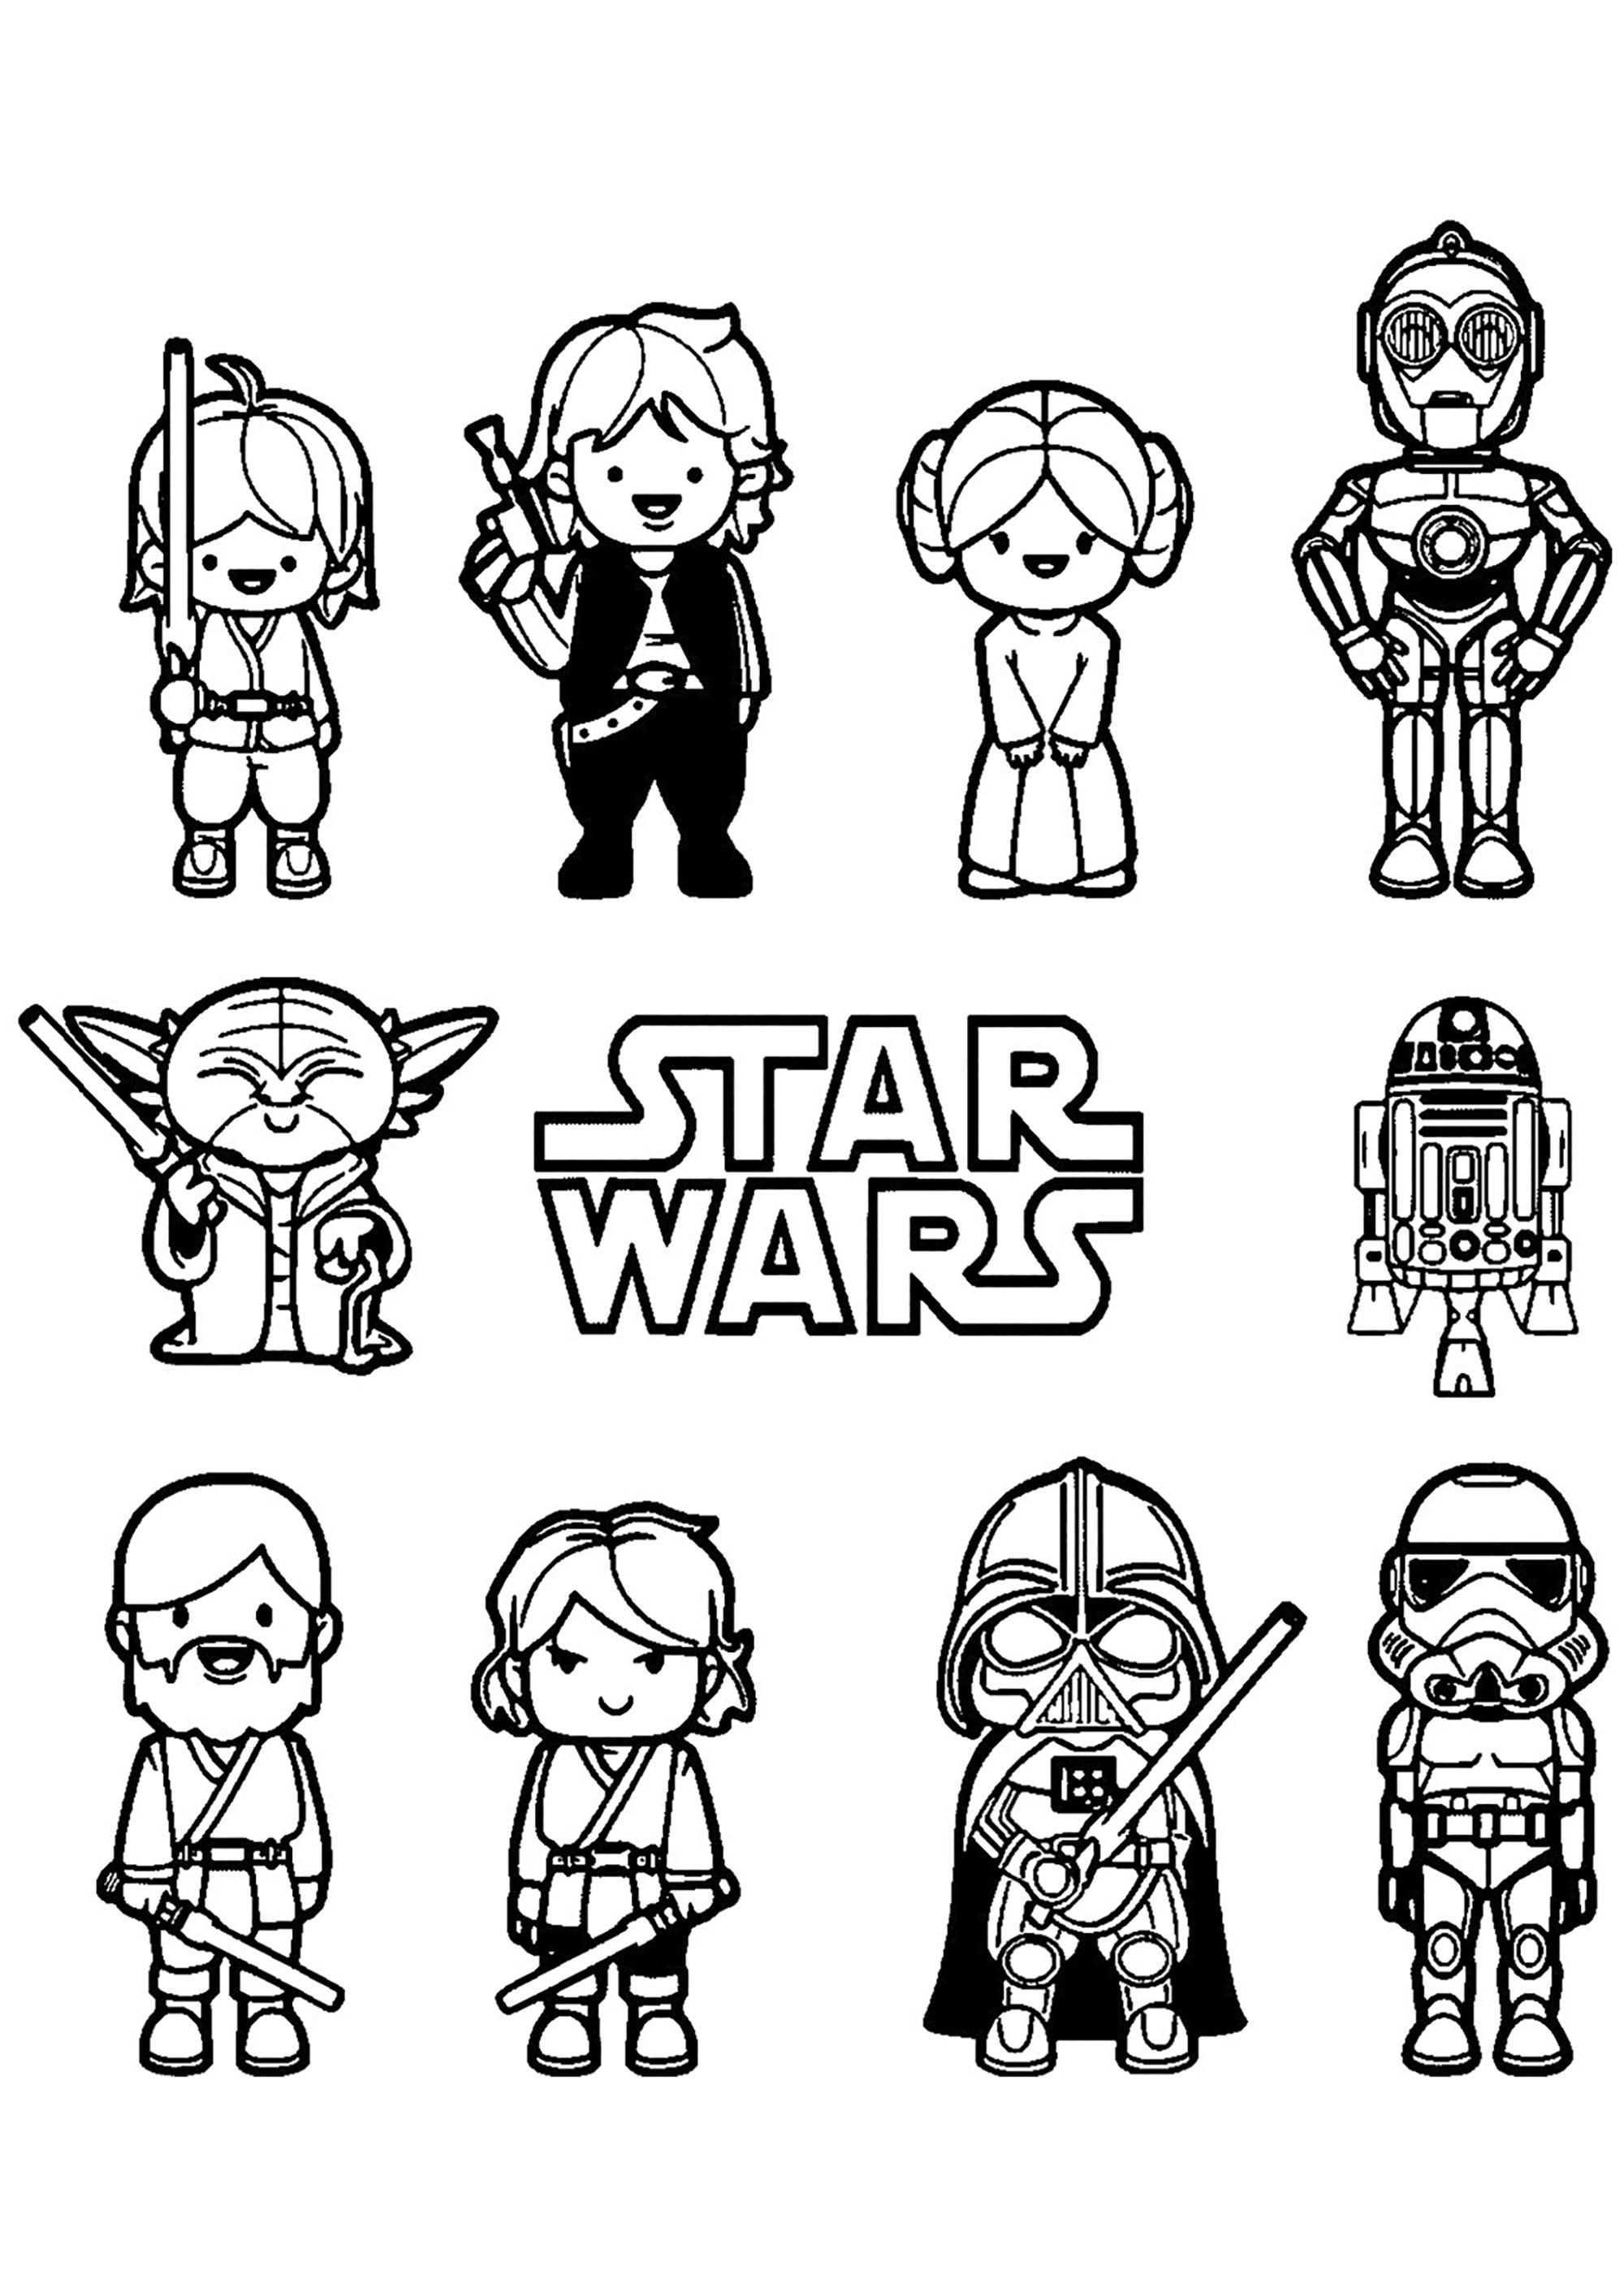 16 Coloring Page Star Wars Star Wars Coloring Sheet Star Wars Cartoon Star Wars Coloring Book